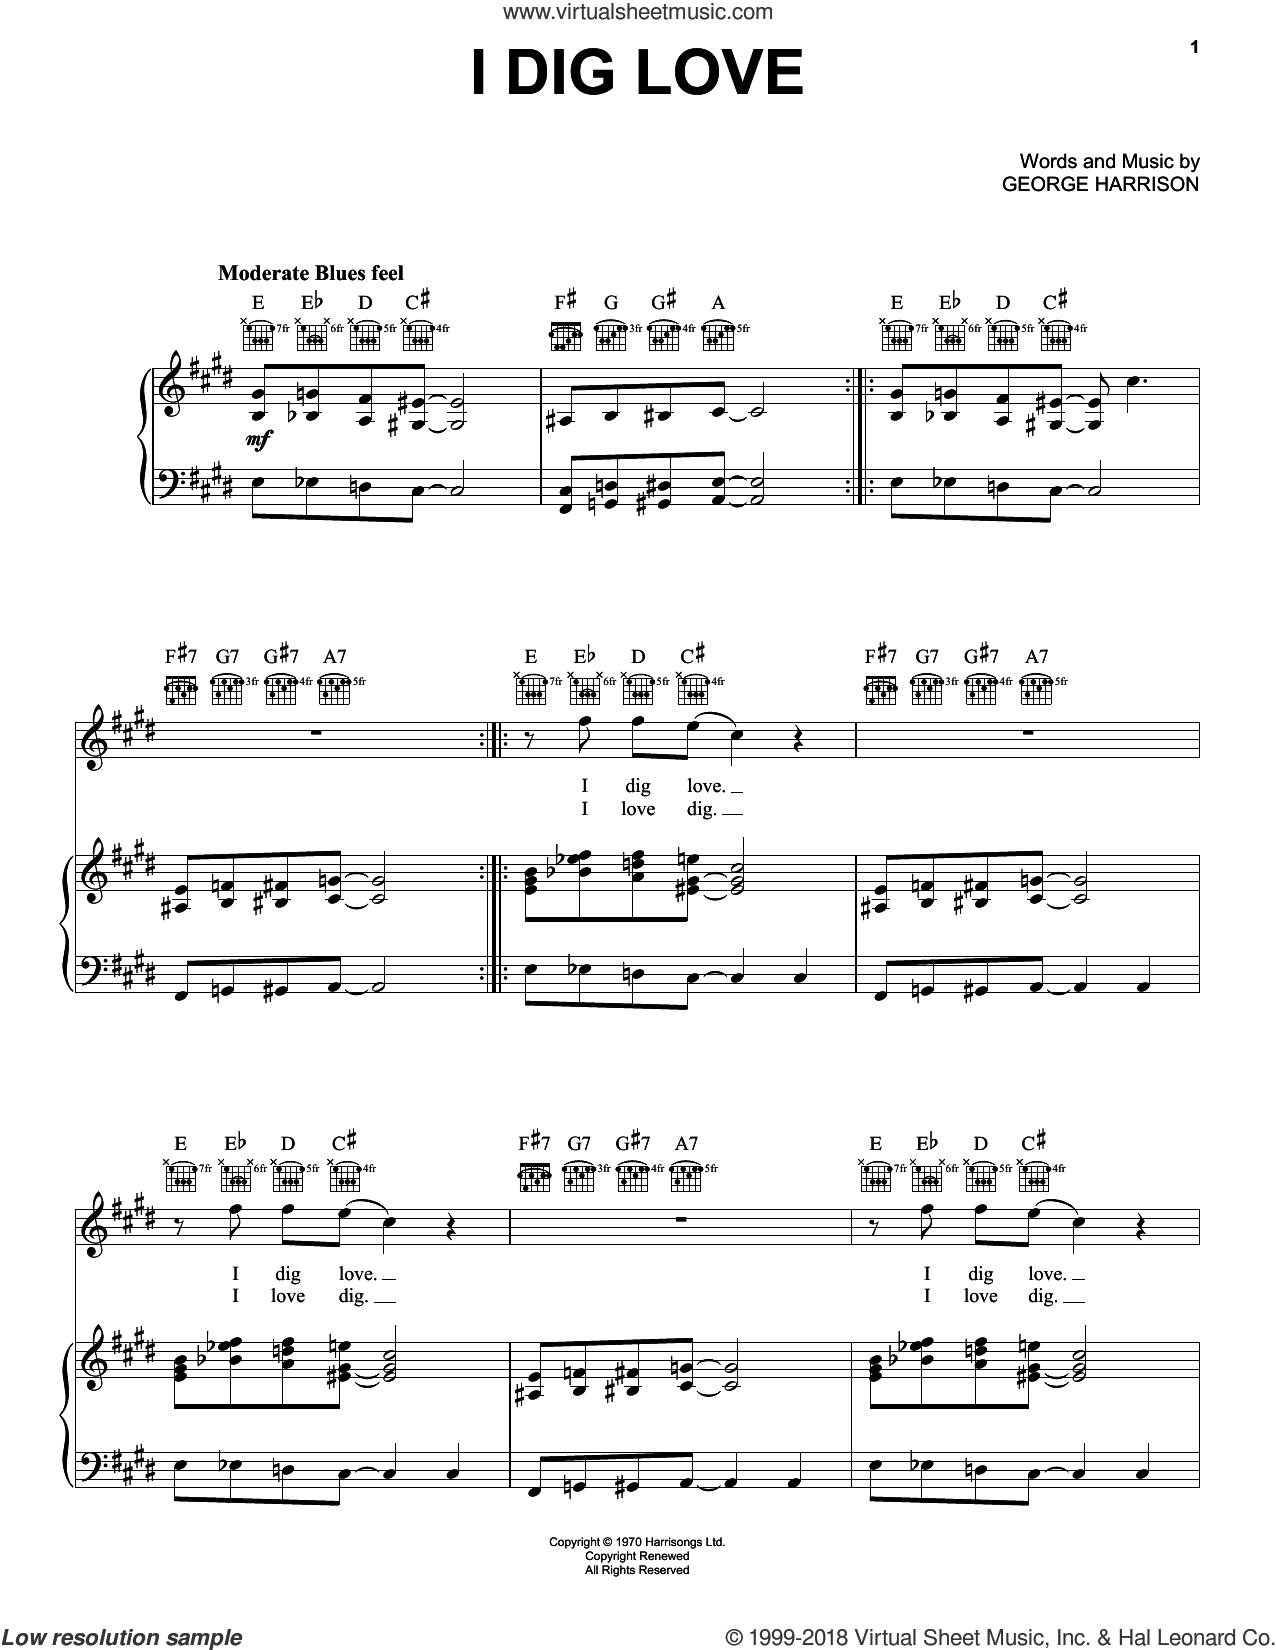 I Dig Love sheet music for voice, piano or guitar by George Harrison, intermediate skill level